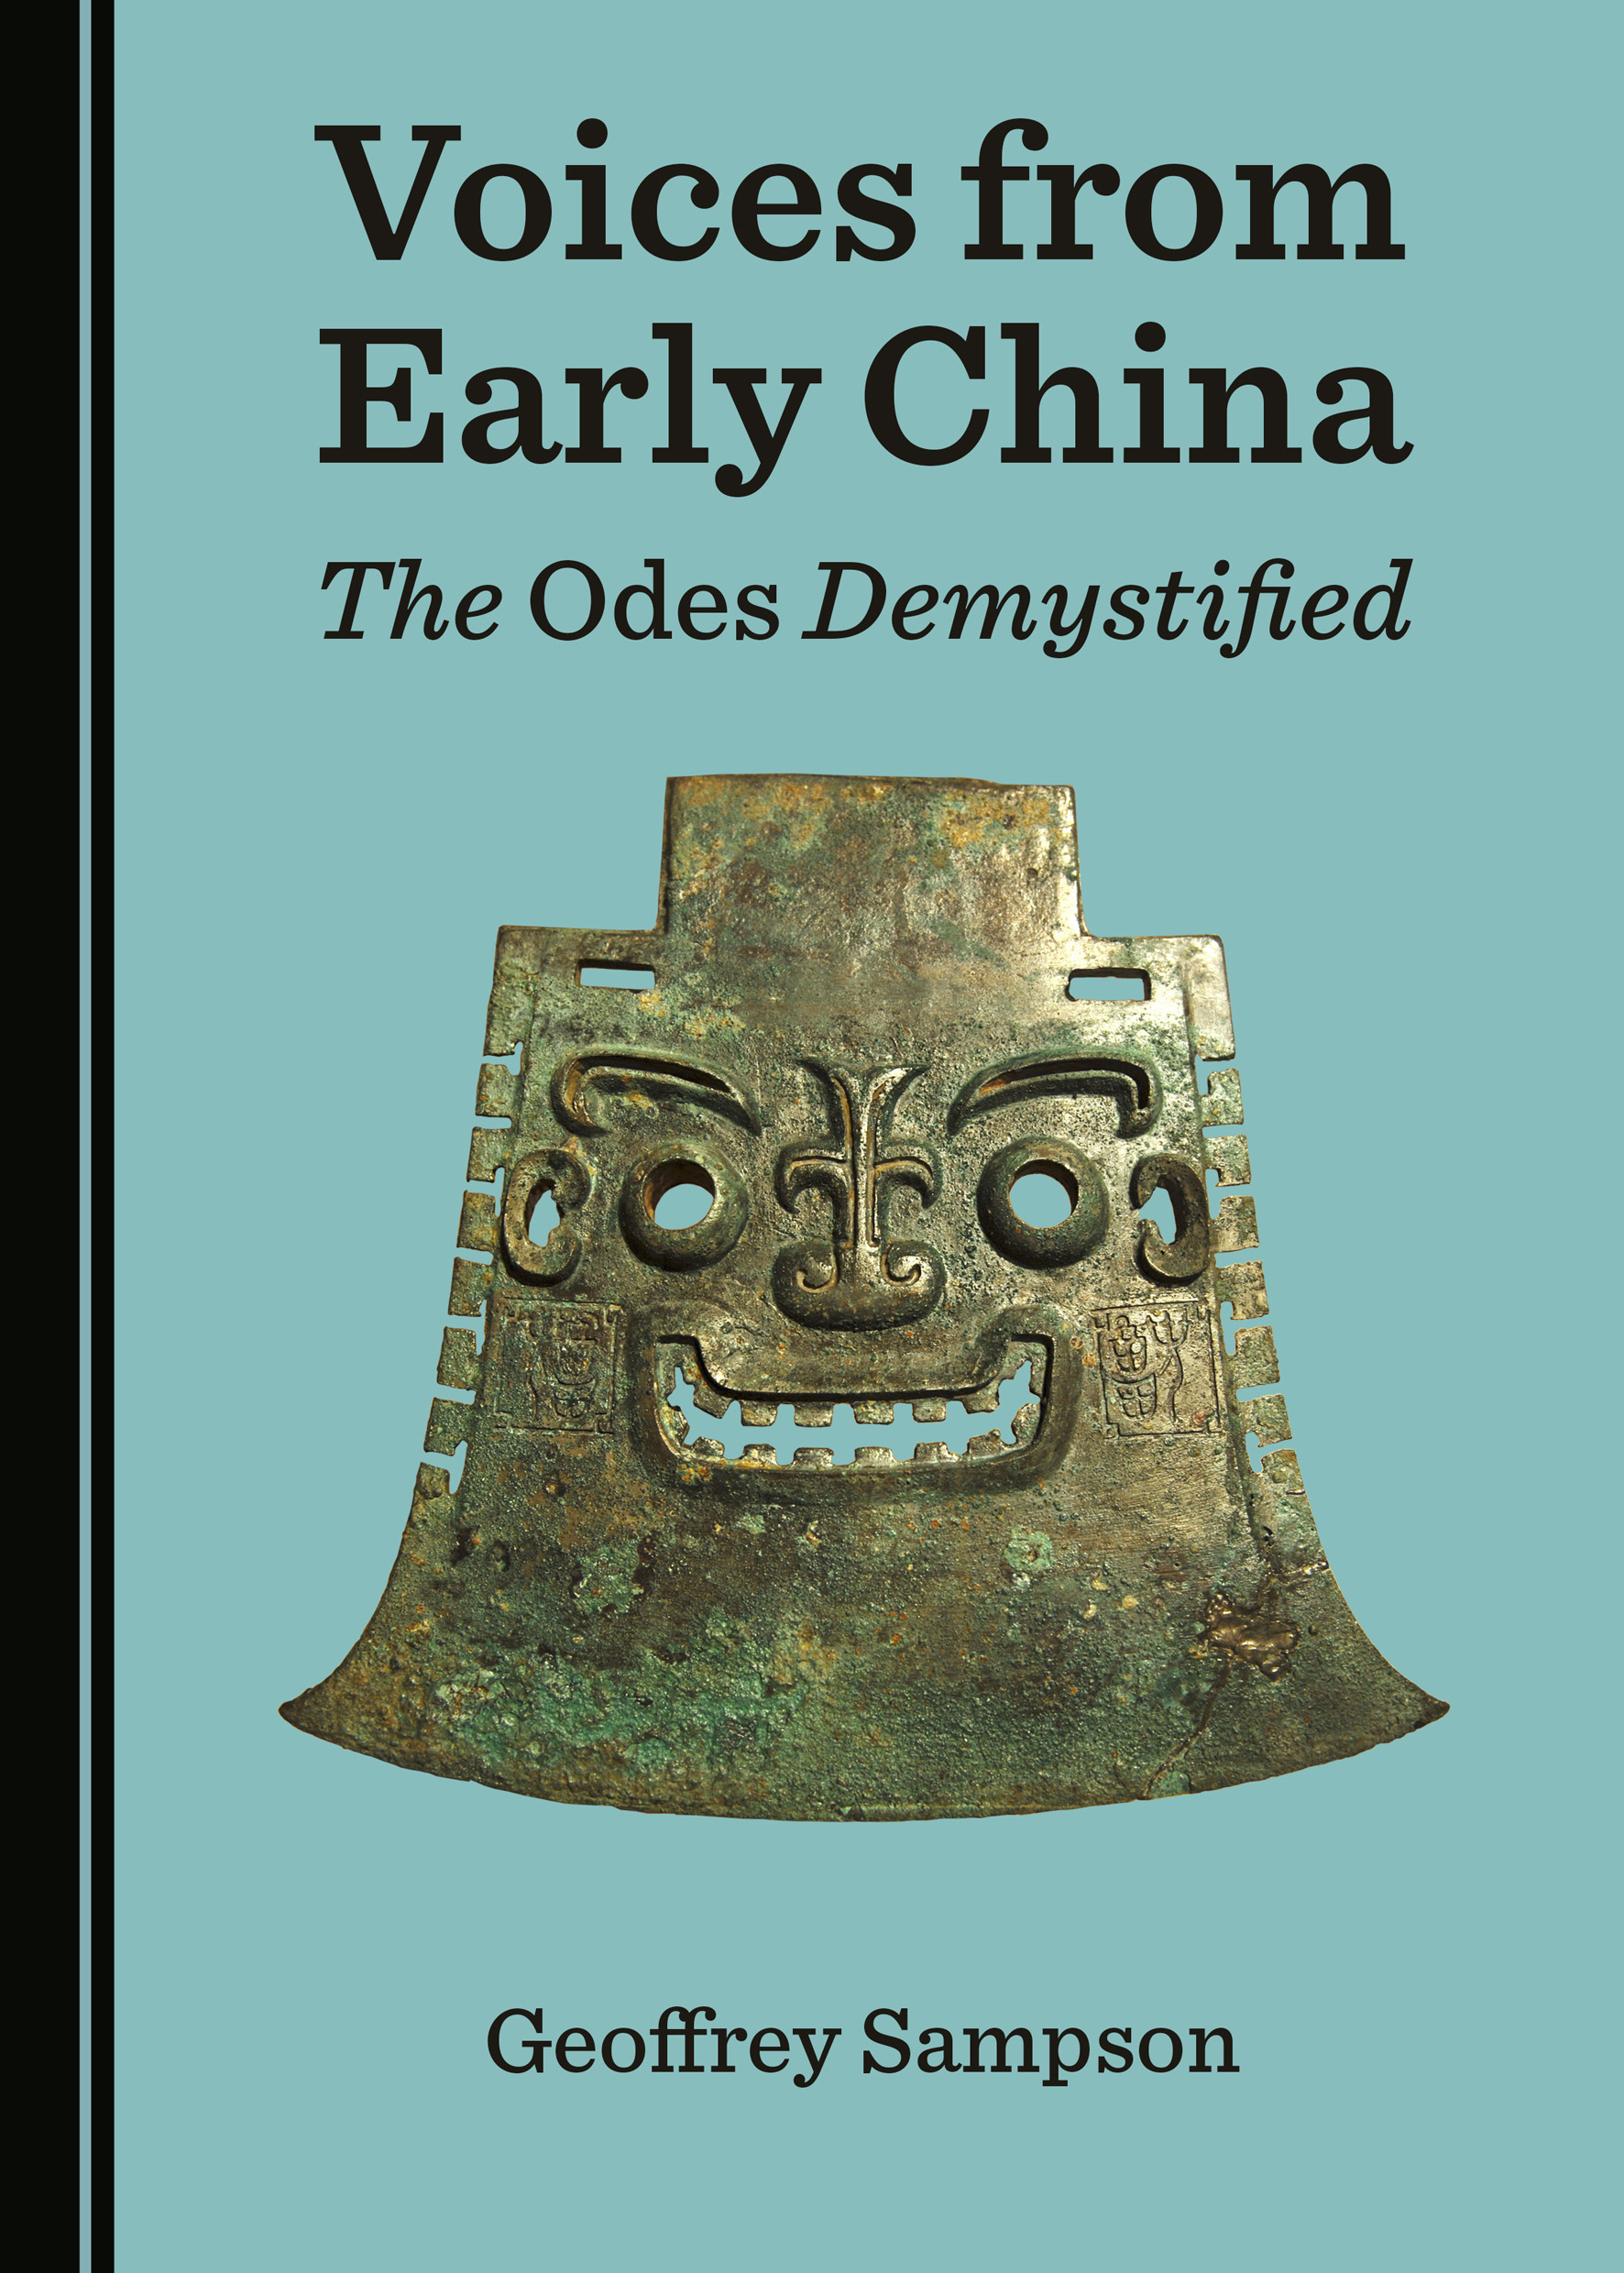 Voices from Early China: The Odes Demystified